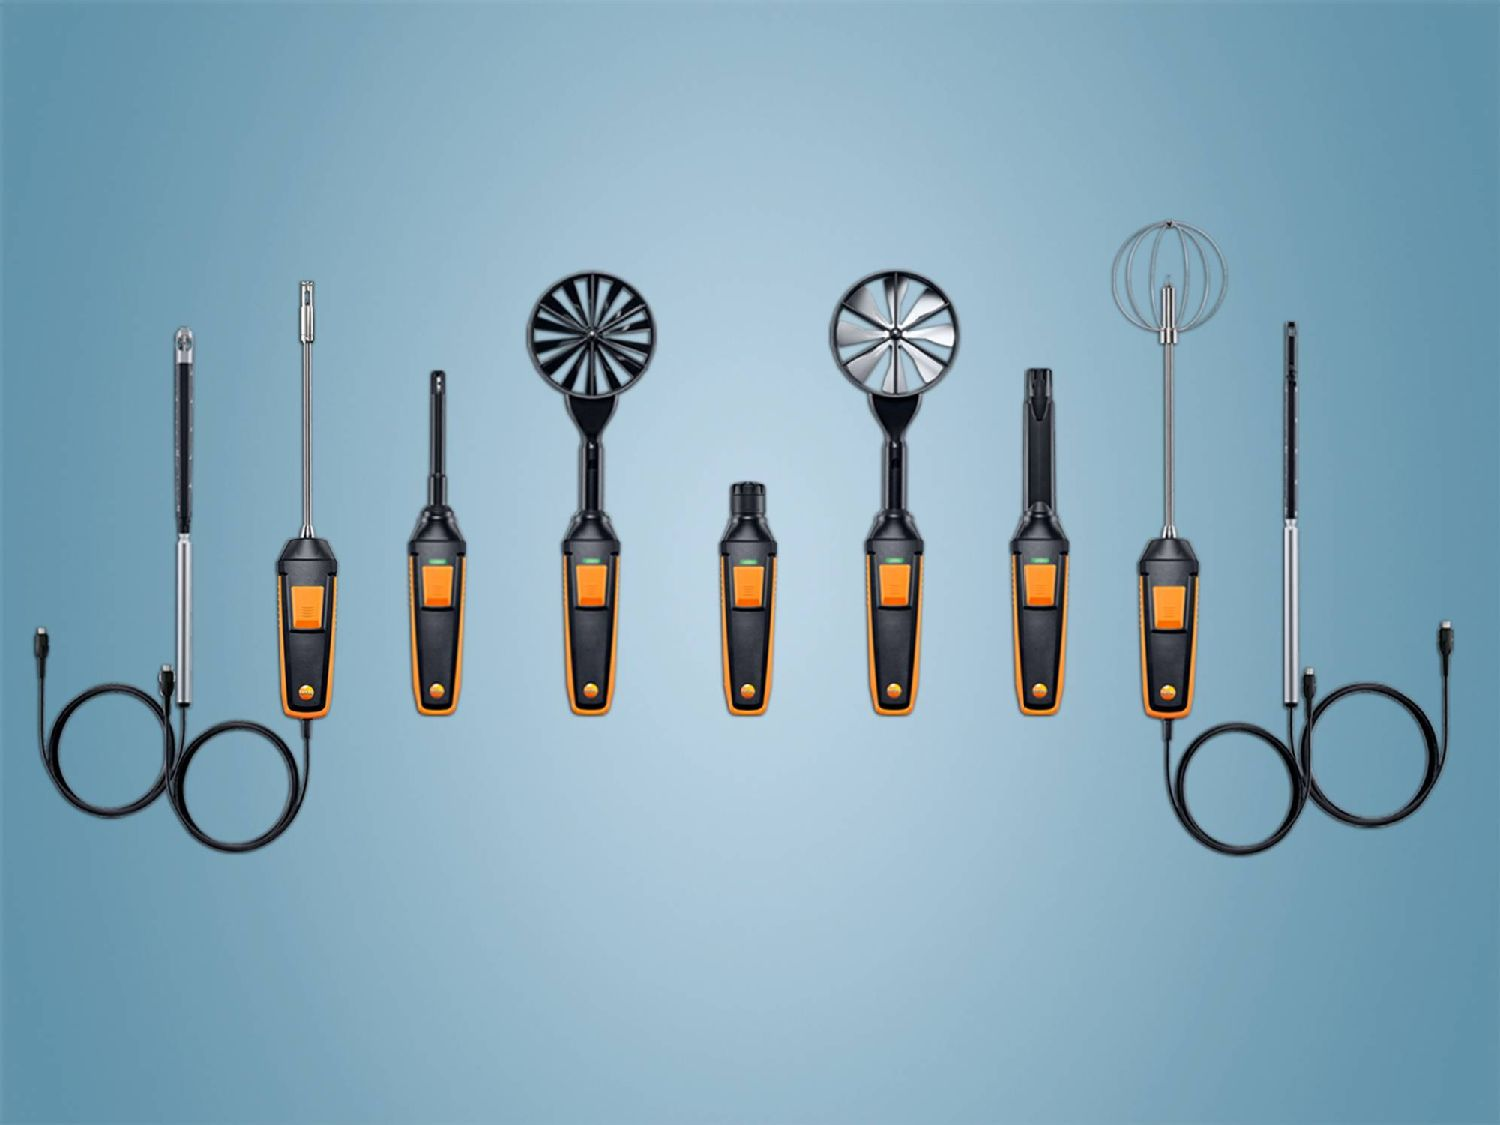 testo 400 probes and accessories